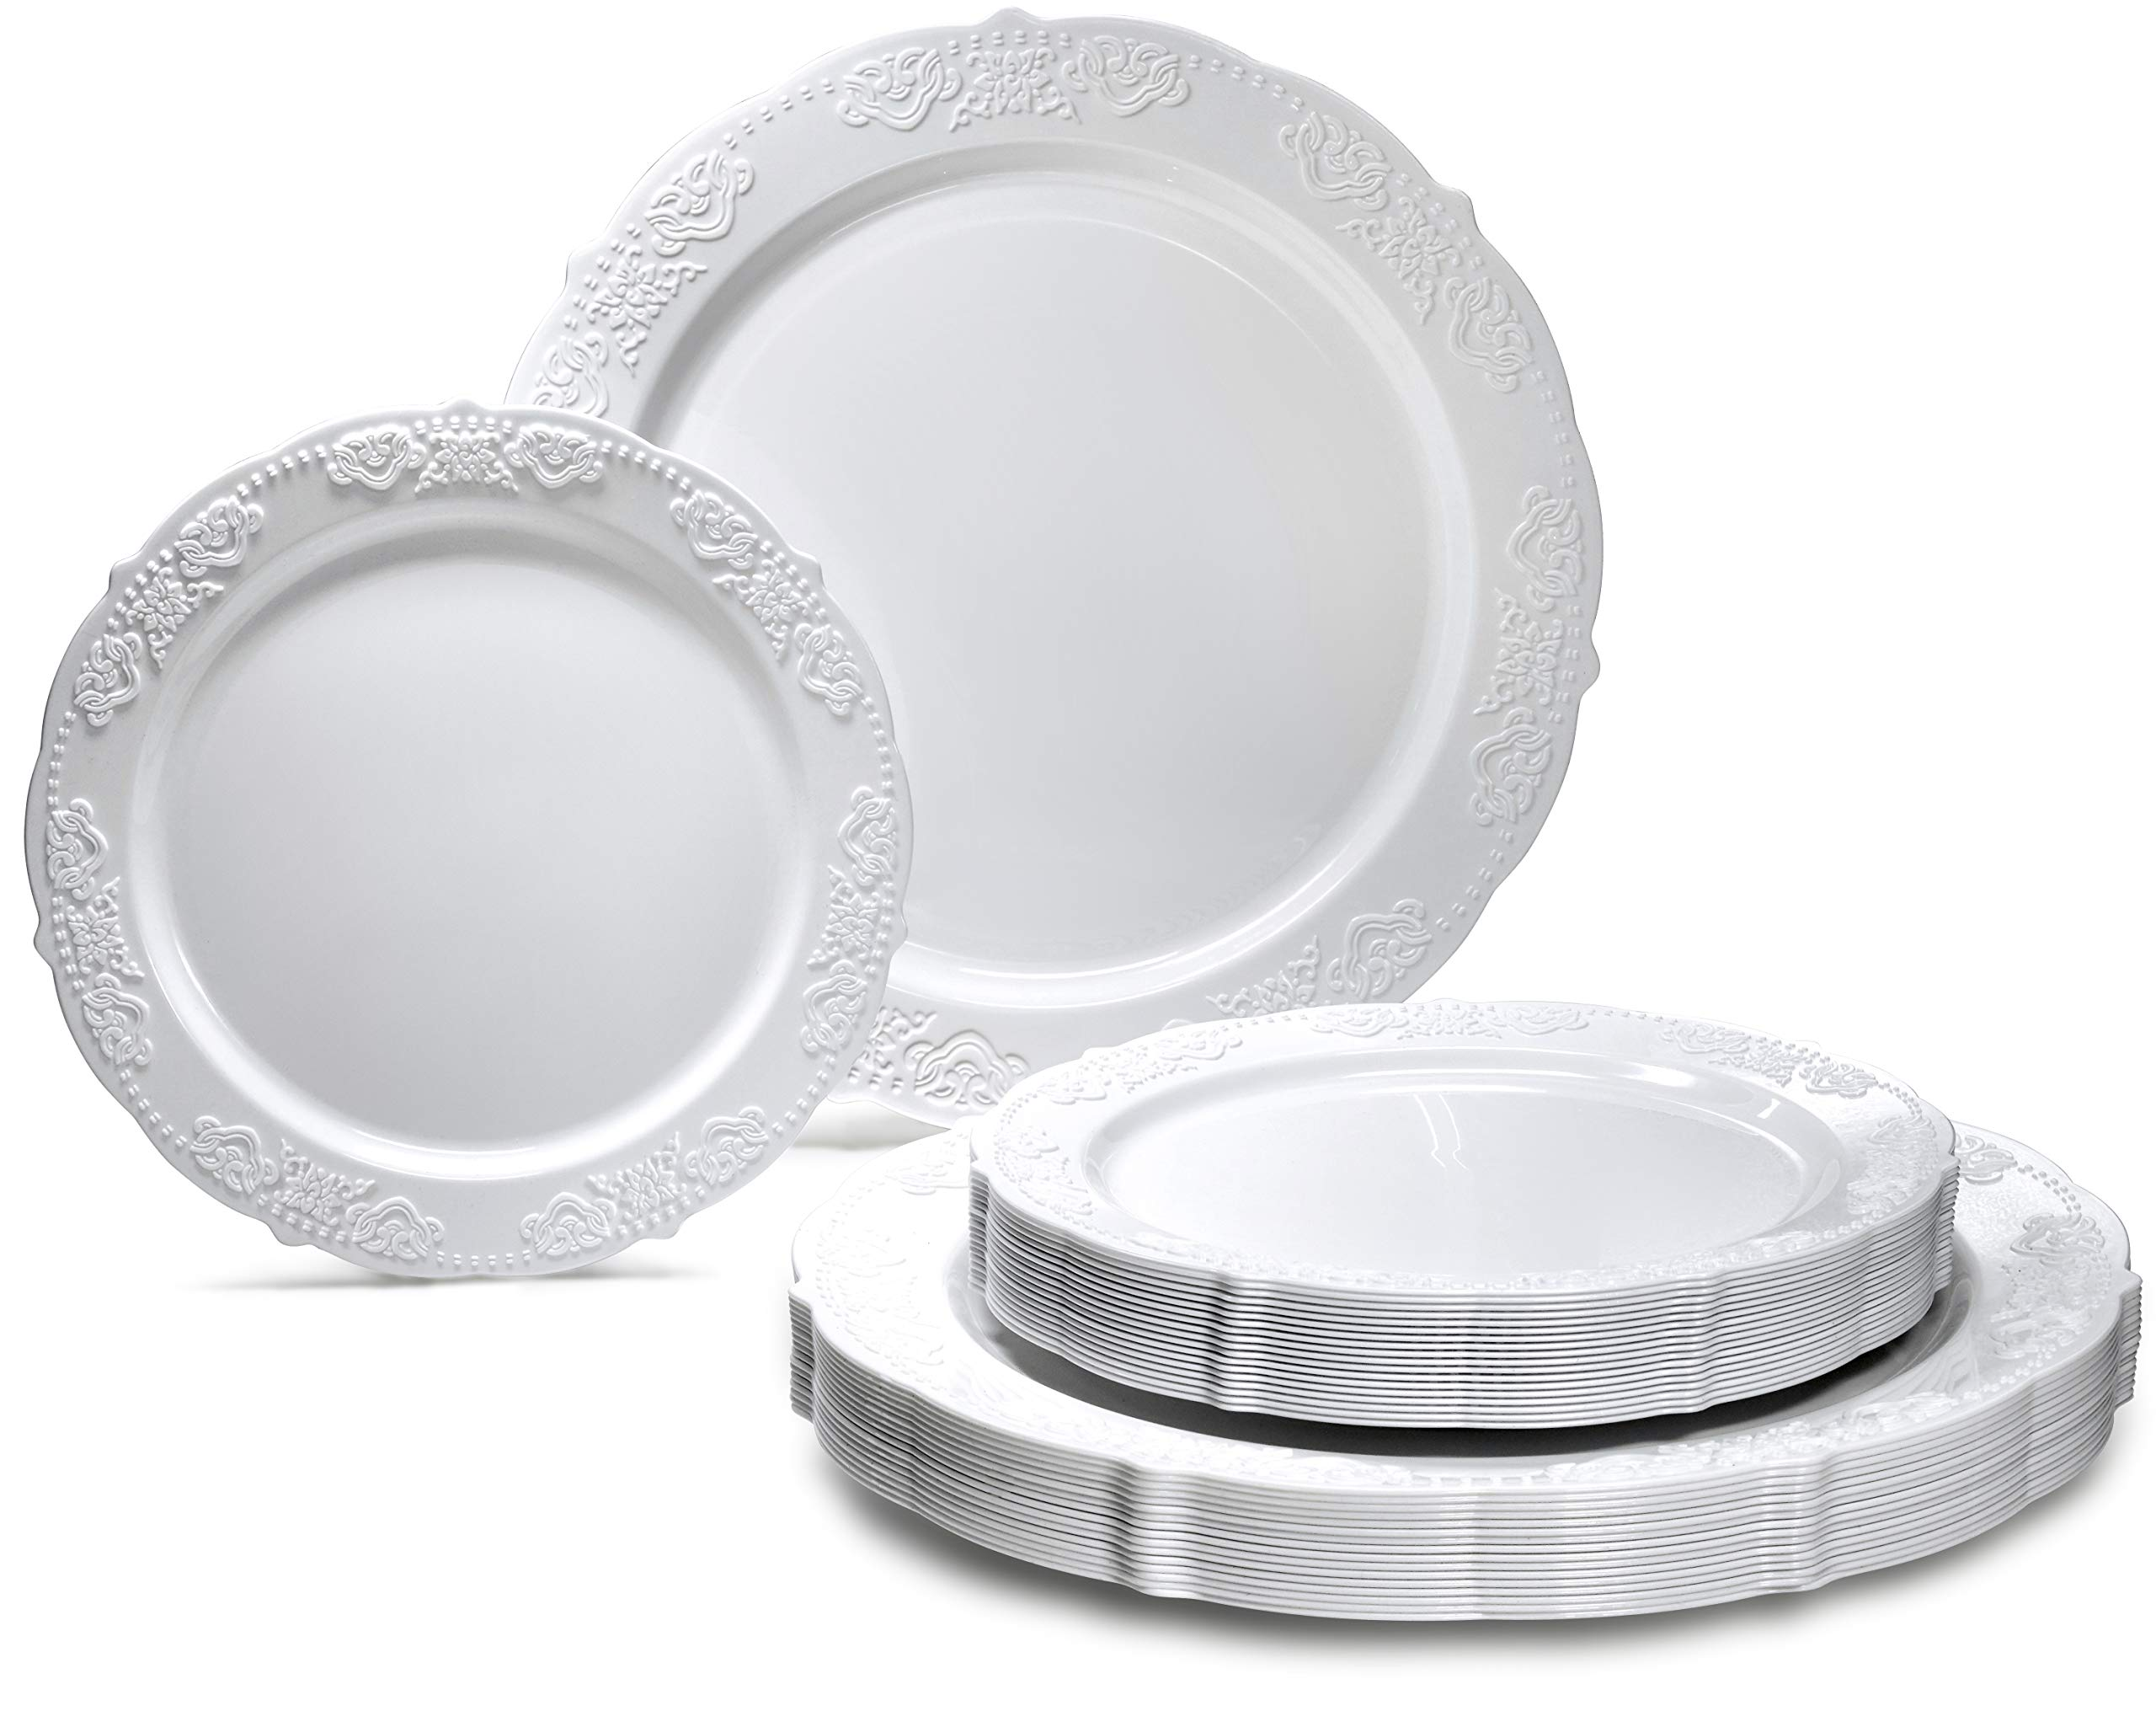 OCCASIONS 240 PACK Wedding Party Disposable Plastic Plates Set - 120 x 10.25'' Dinner + 120 x 7.5'' Salad/Dessert Plate (Portofino Plain White)